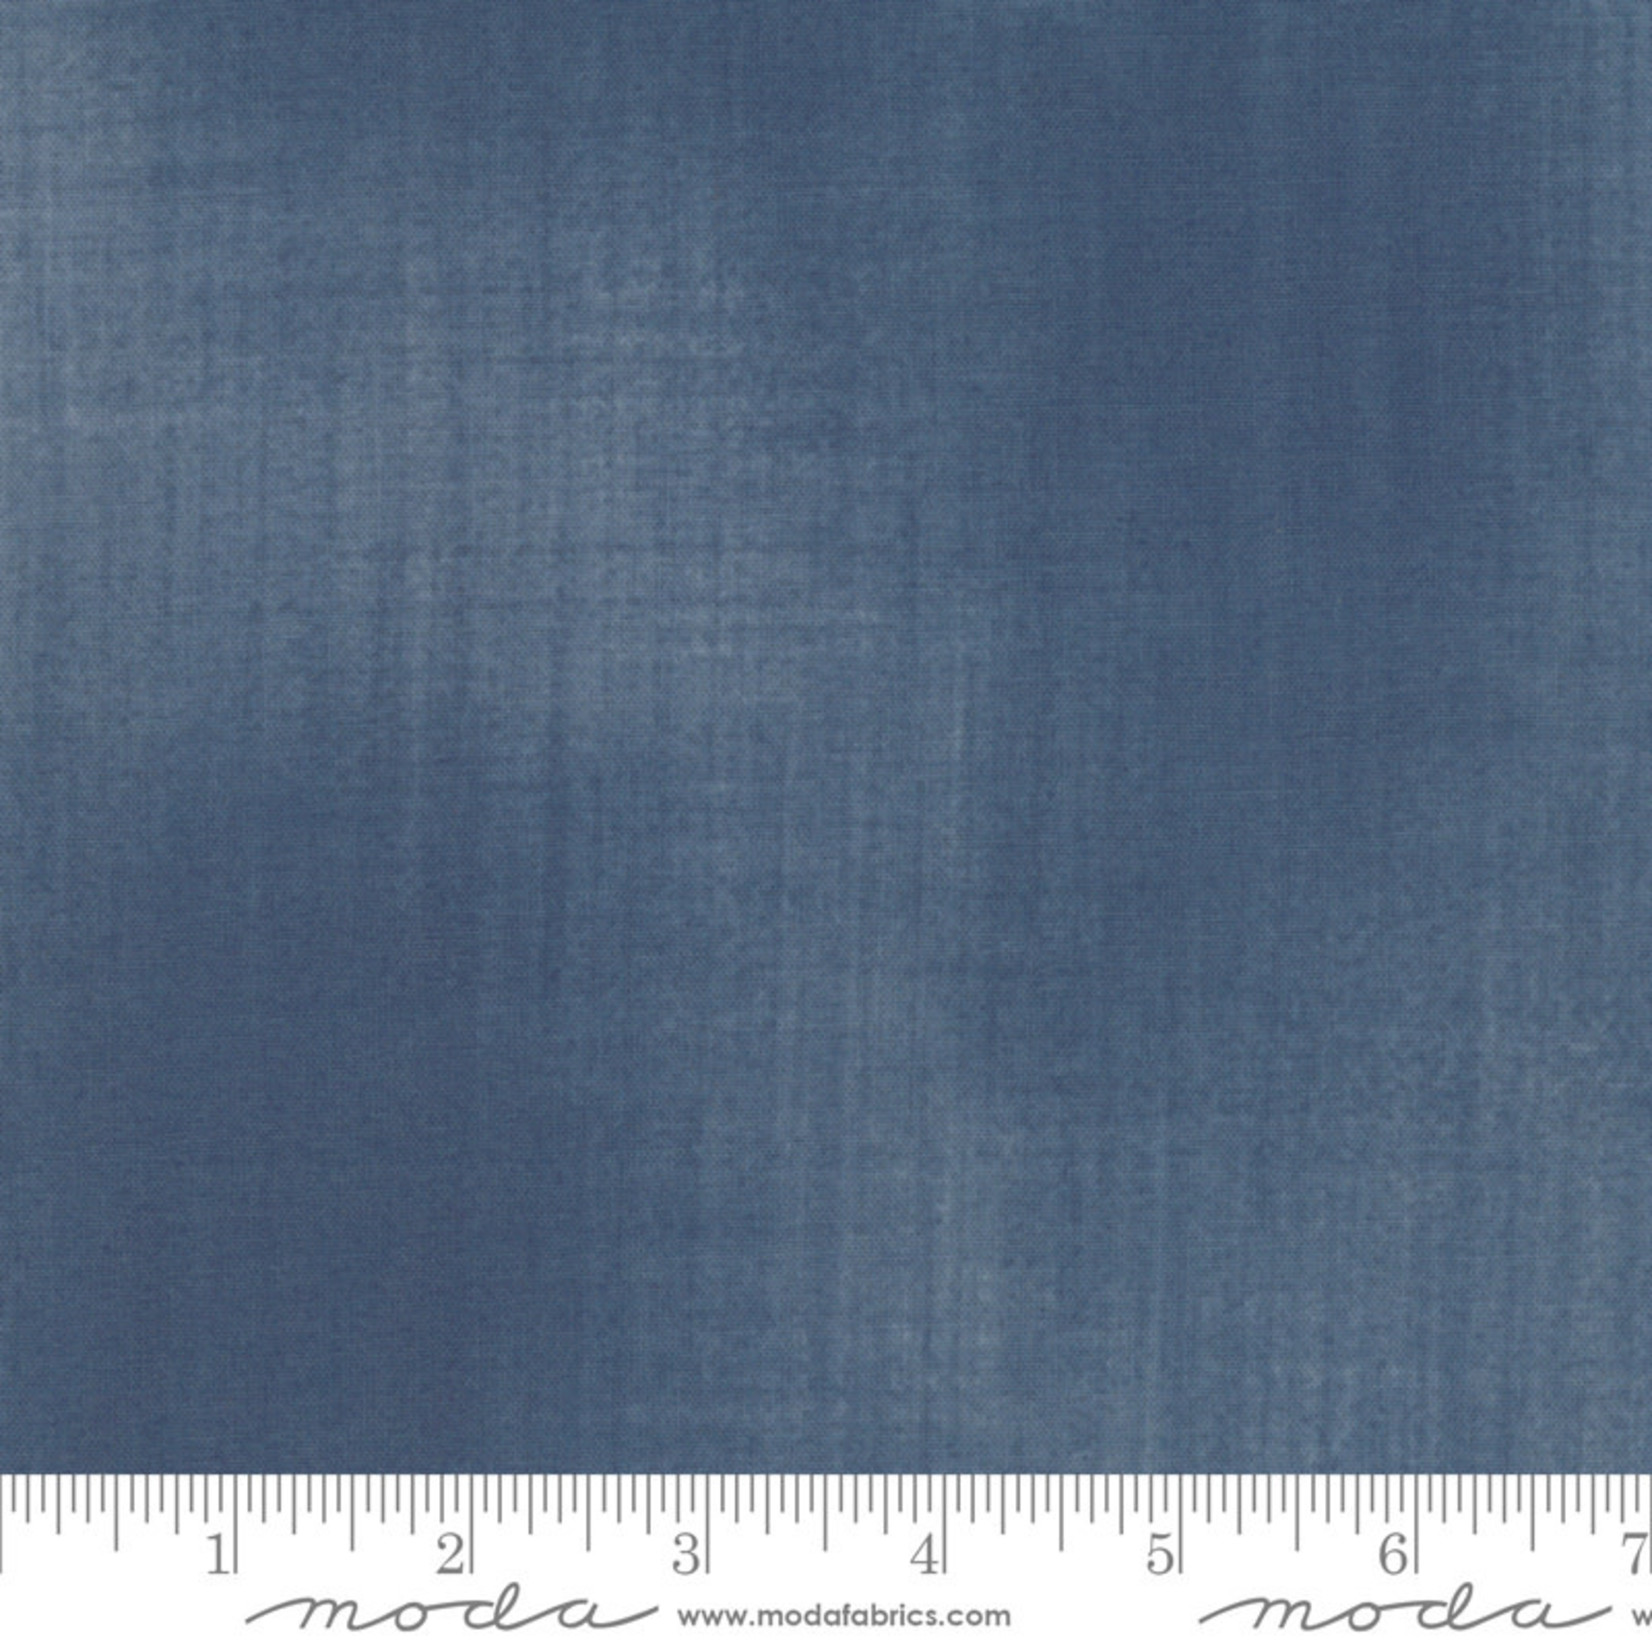 Moda THE BLUES, WOVEN TEXTURE, FITSGER (51357-32) $0.21 PER CM OR $21/M